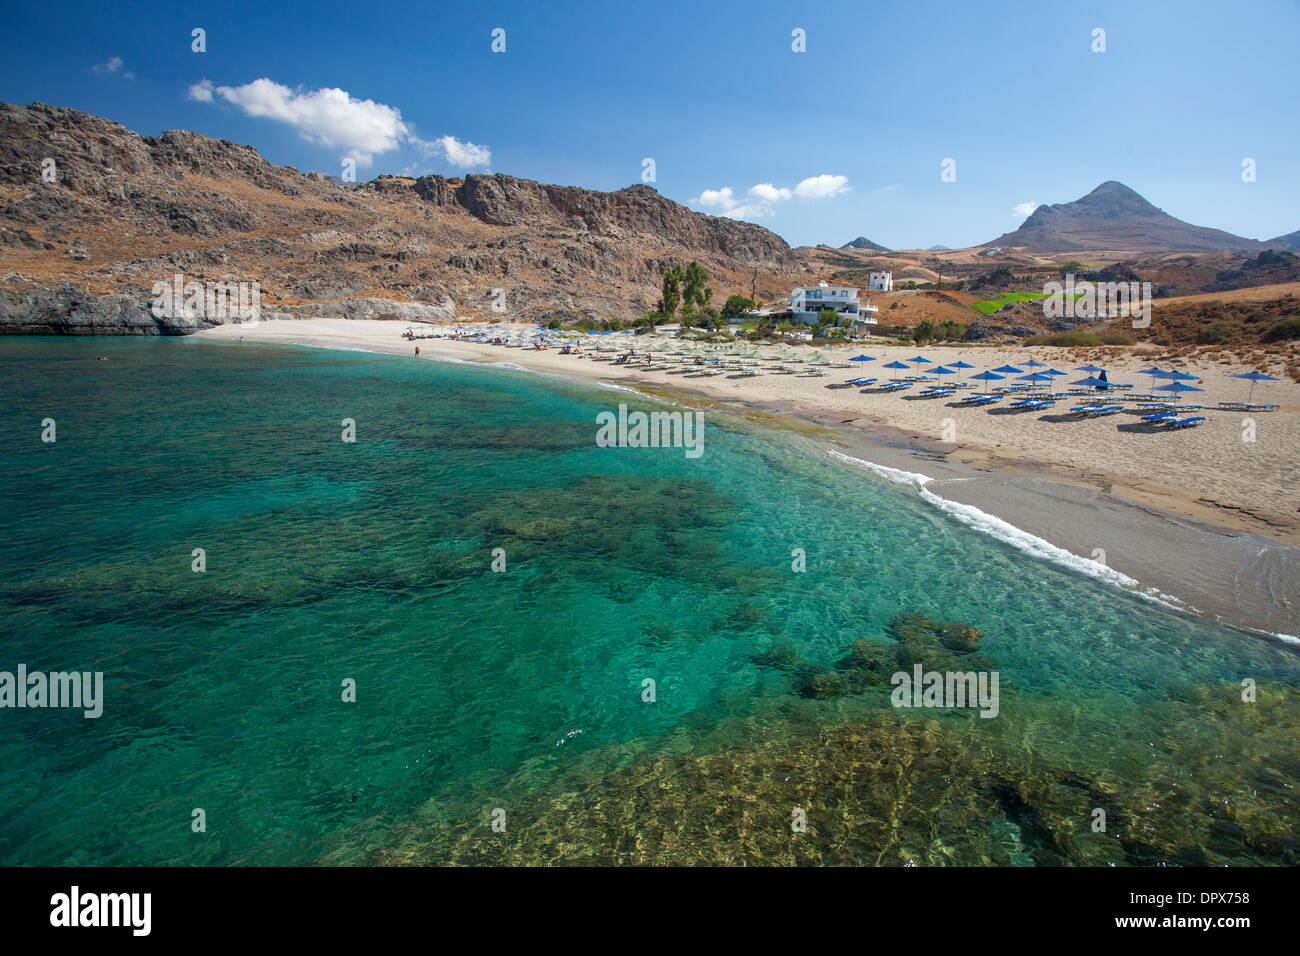 Skinaria Beach, near Plakias, Rethymnon District, Crete, Greece. - Stock Image